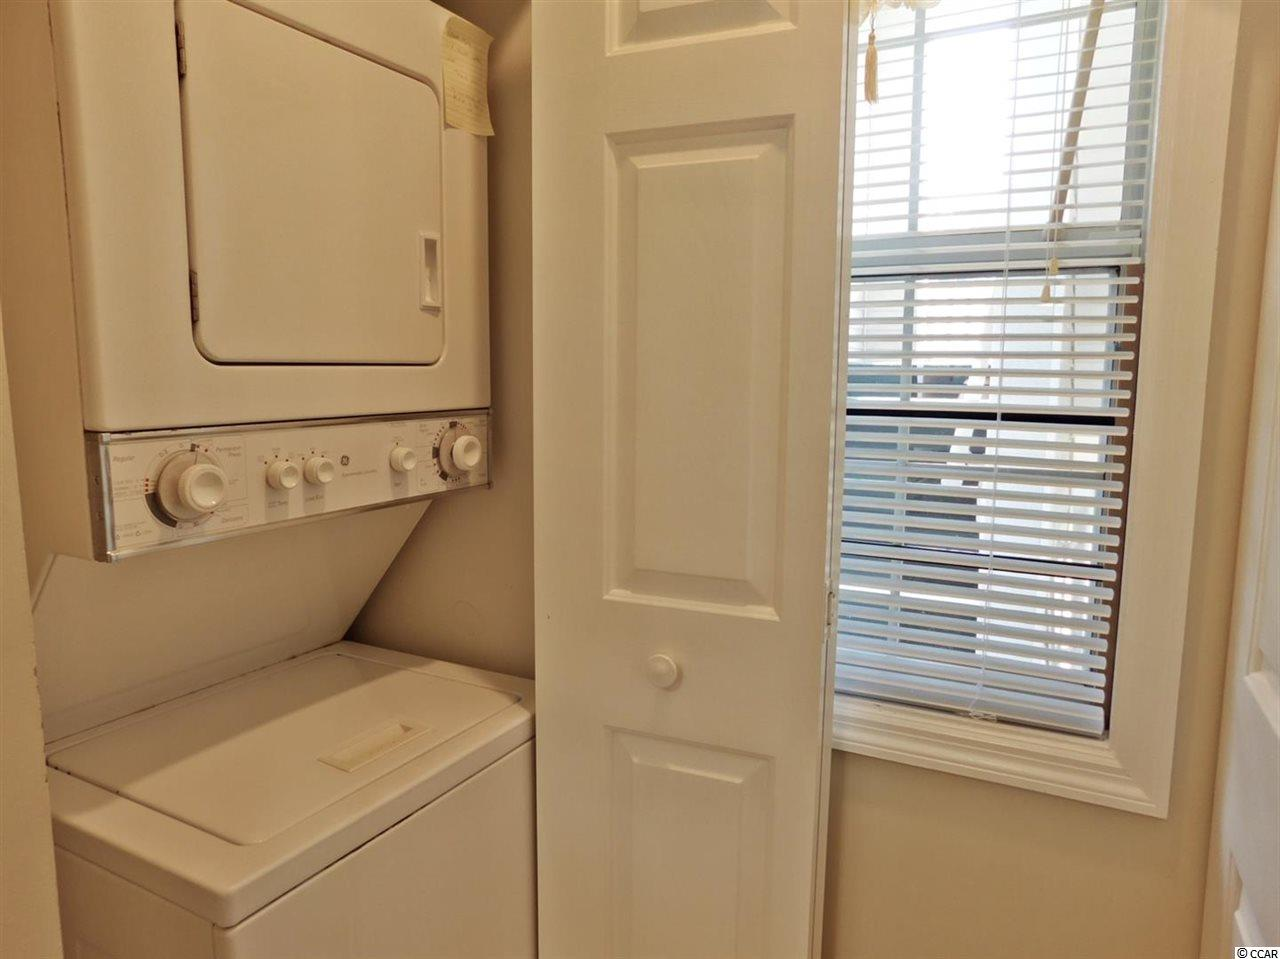 MLS #1719992 at  River Oaks Condos for sale